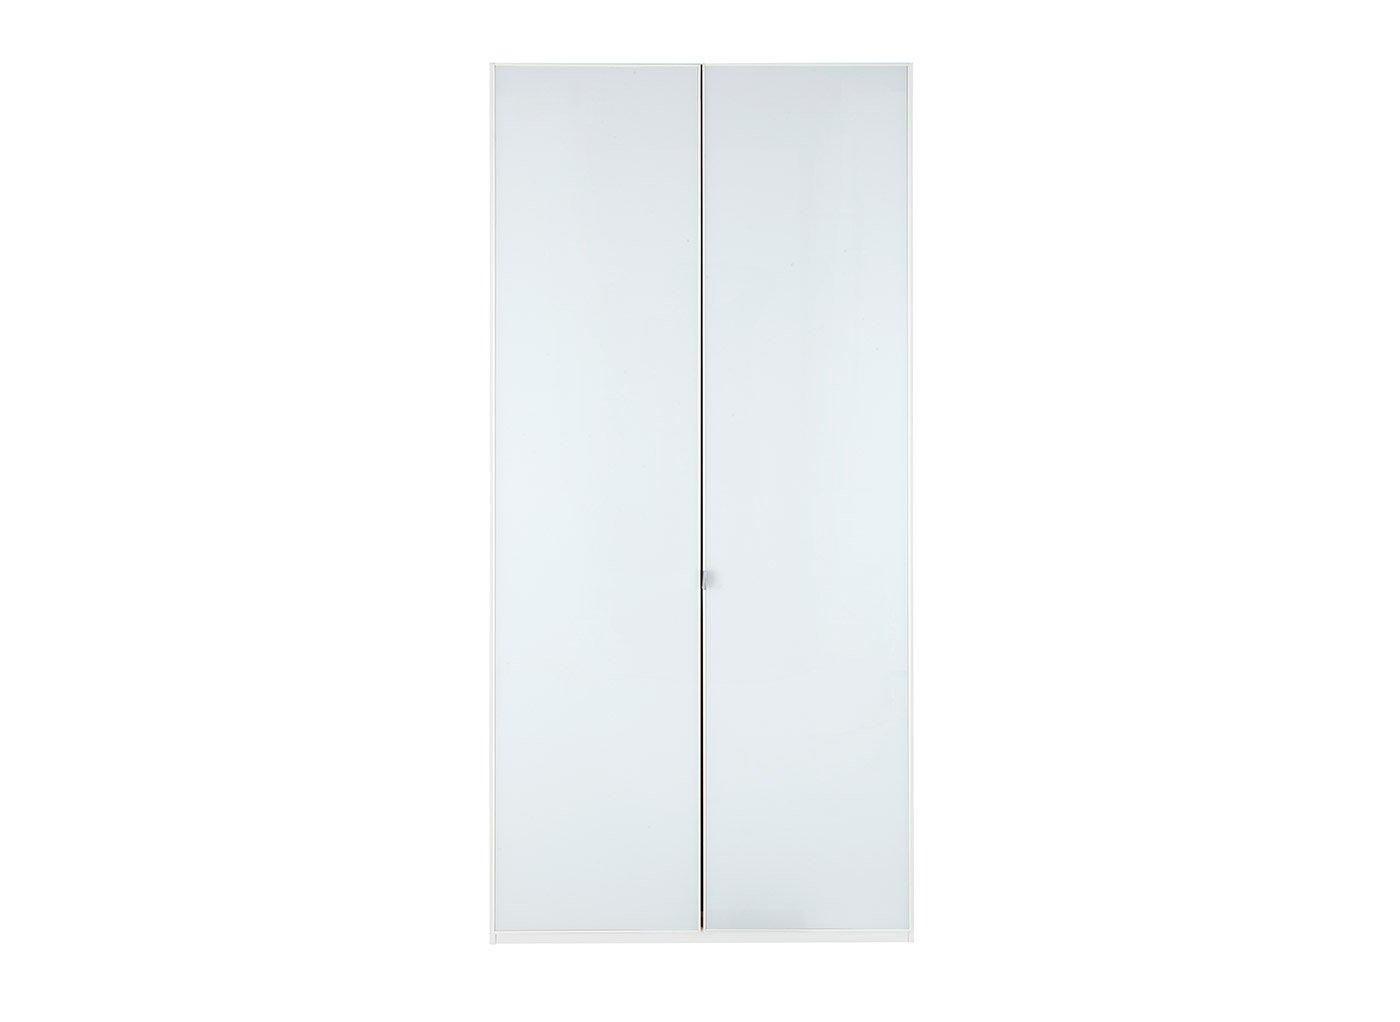 Memphis 2 Door Wardrobe - White